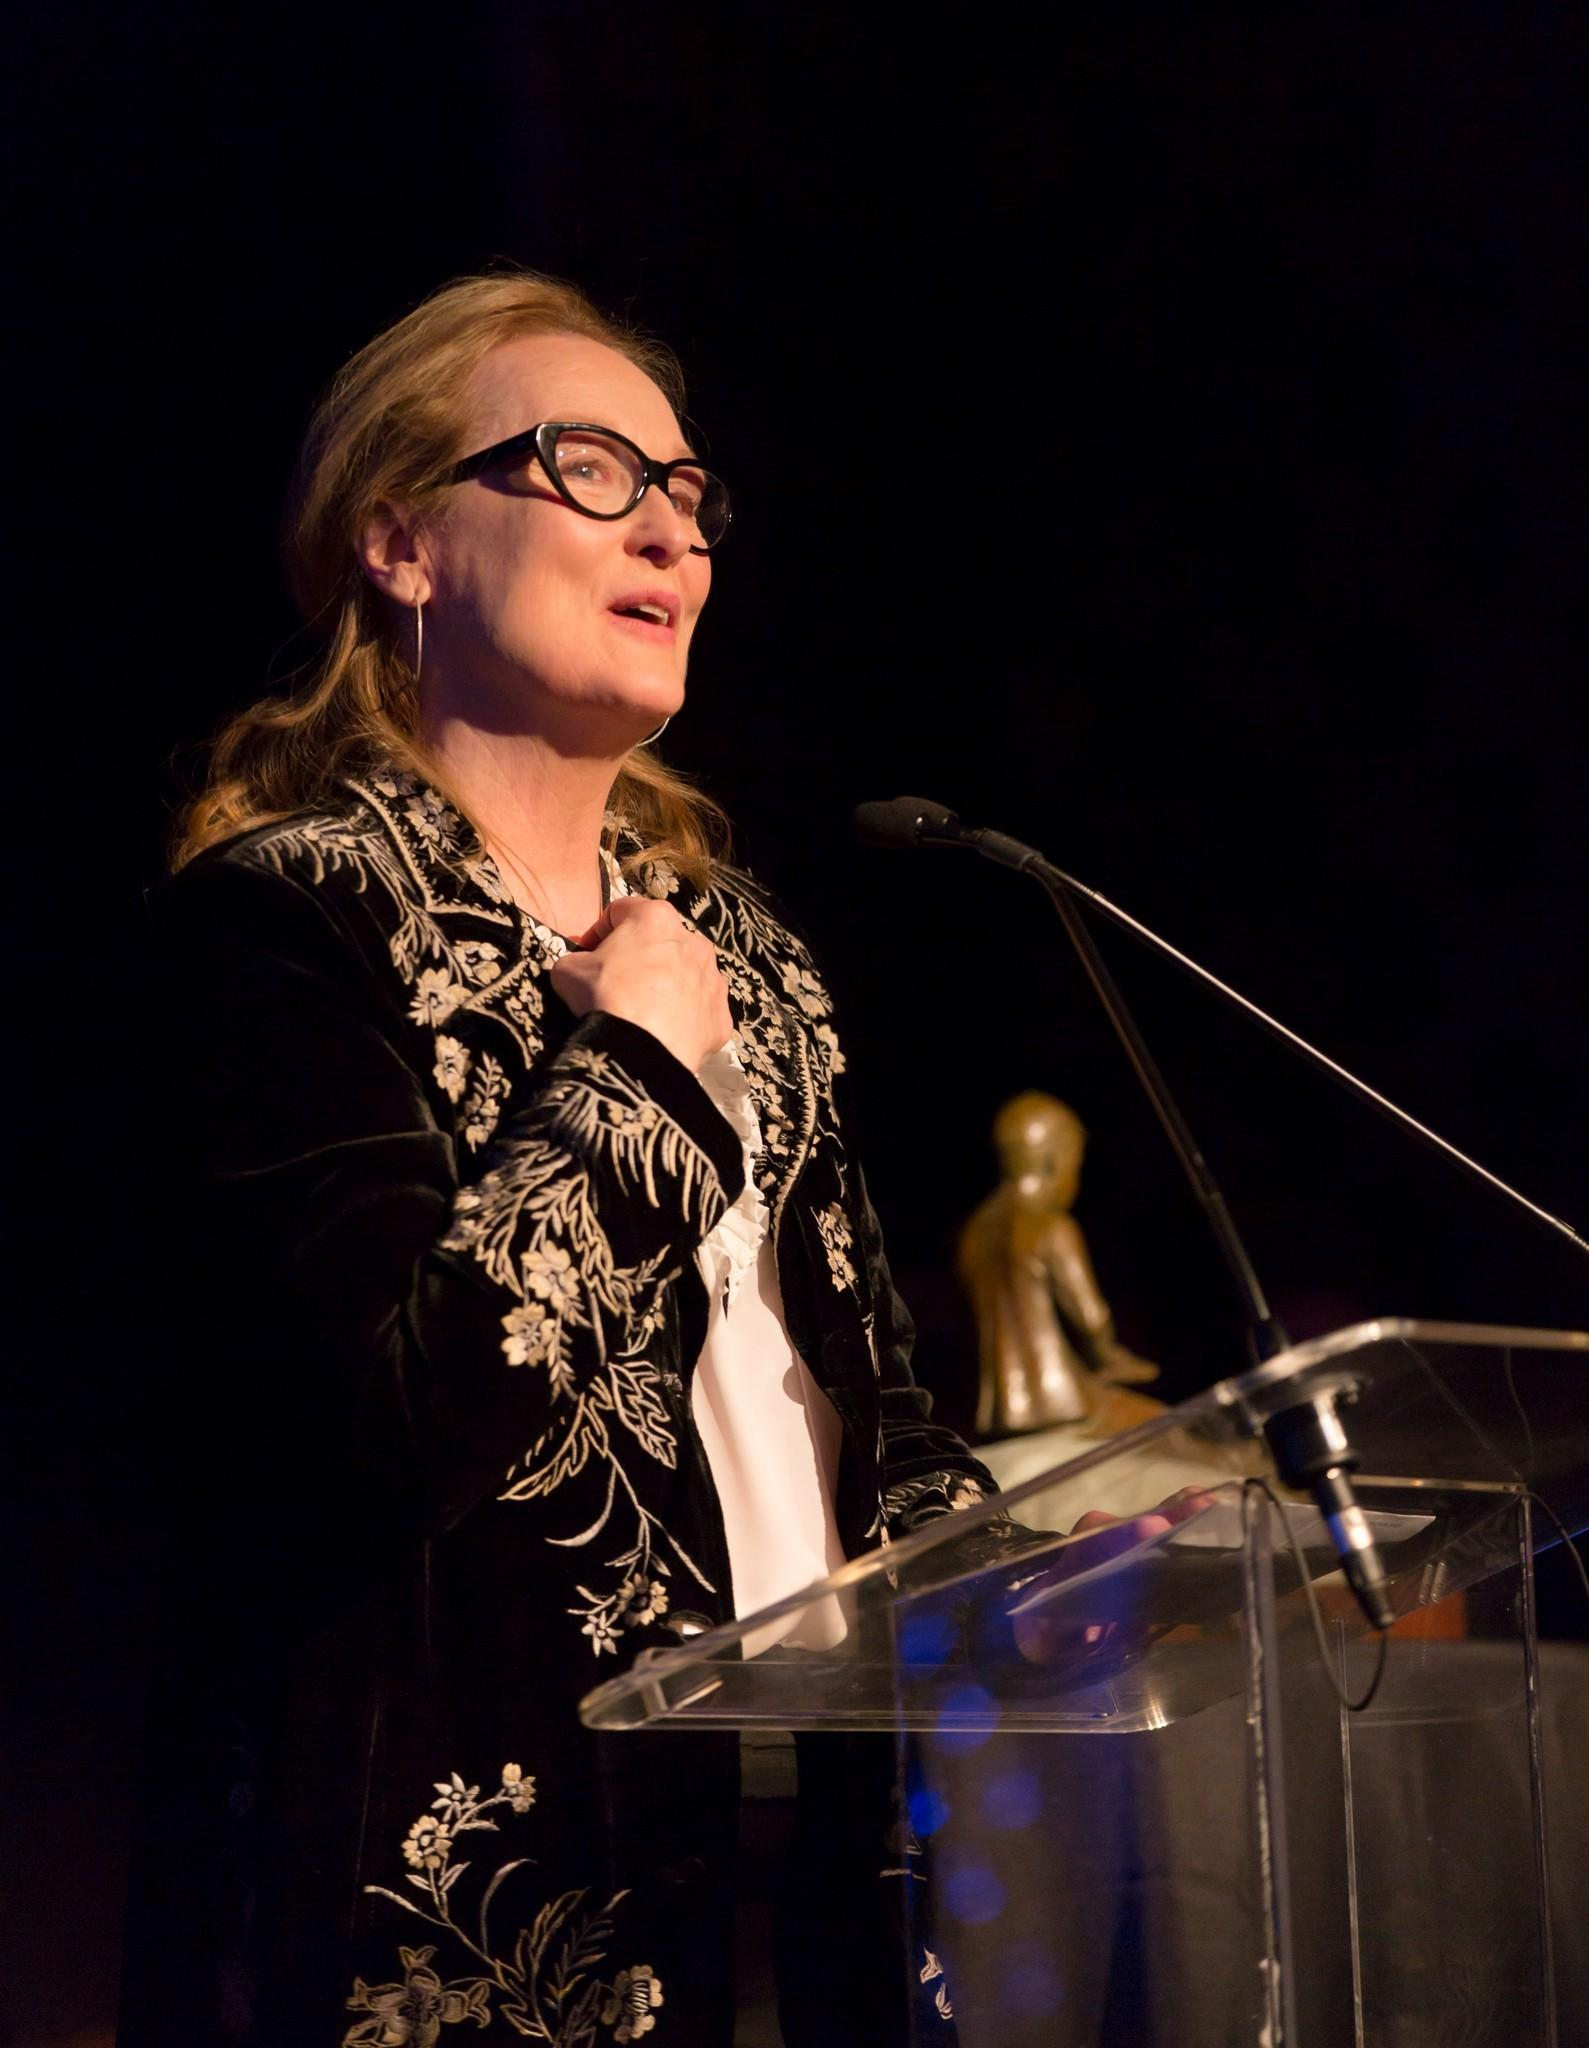 Meryl Streep at the Monte Cristo Award banquet in New York. The event was a fundraiser for the Eugene O'Neill Theater Center in Waterford.